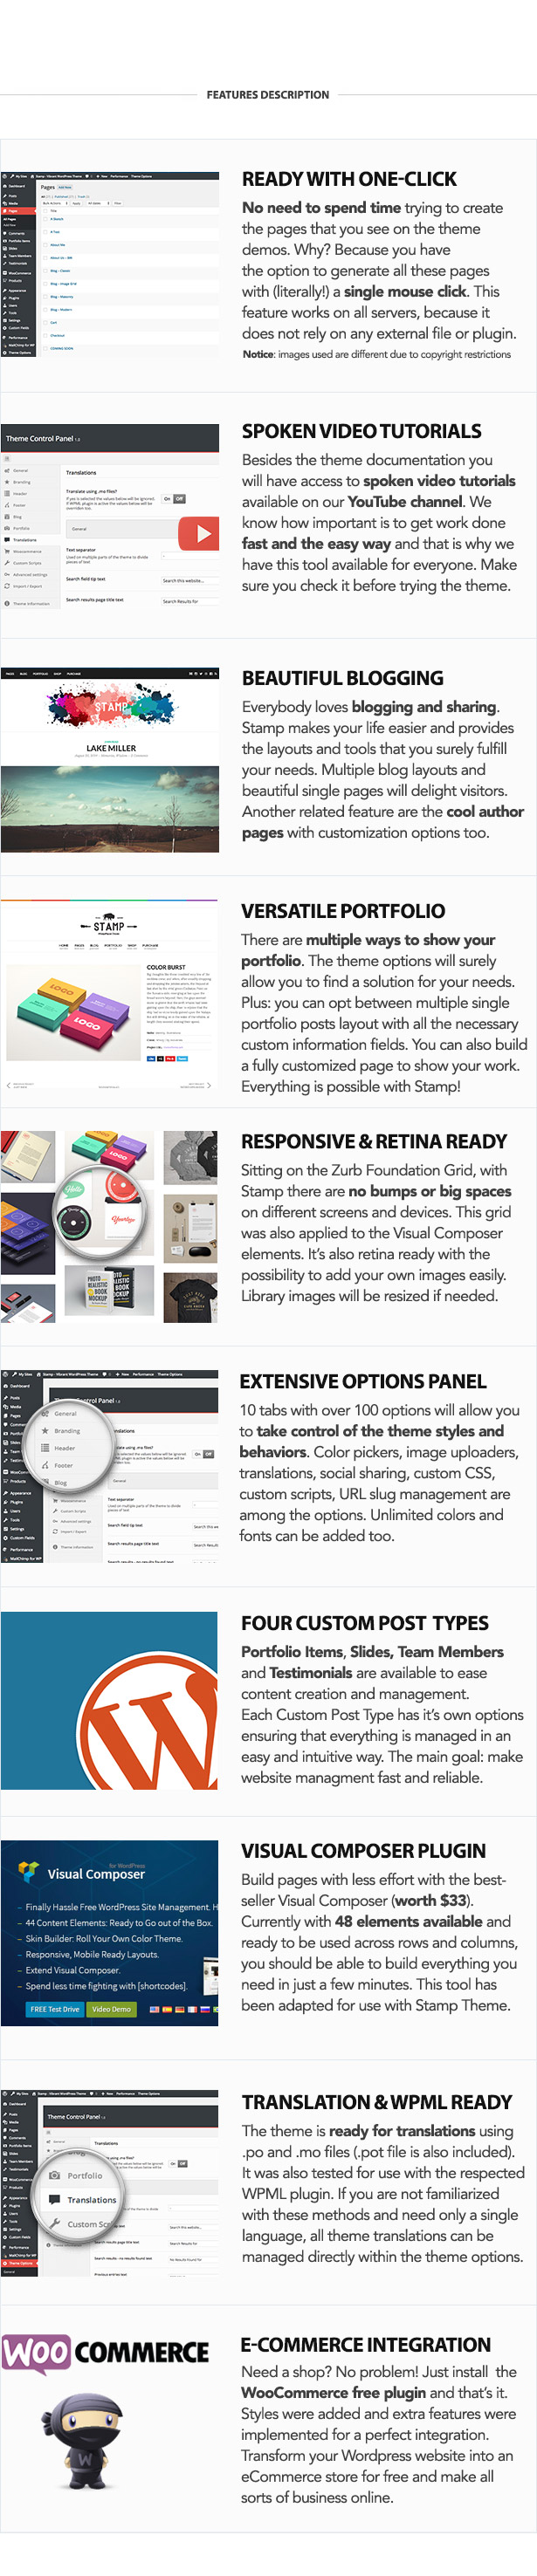 Stamp - Vibrant WordPress Theme